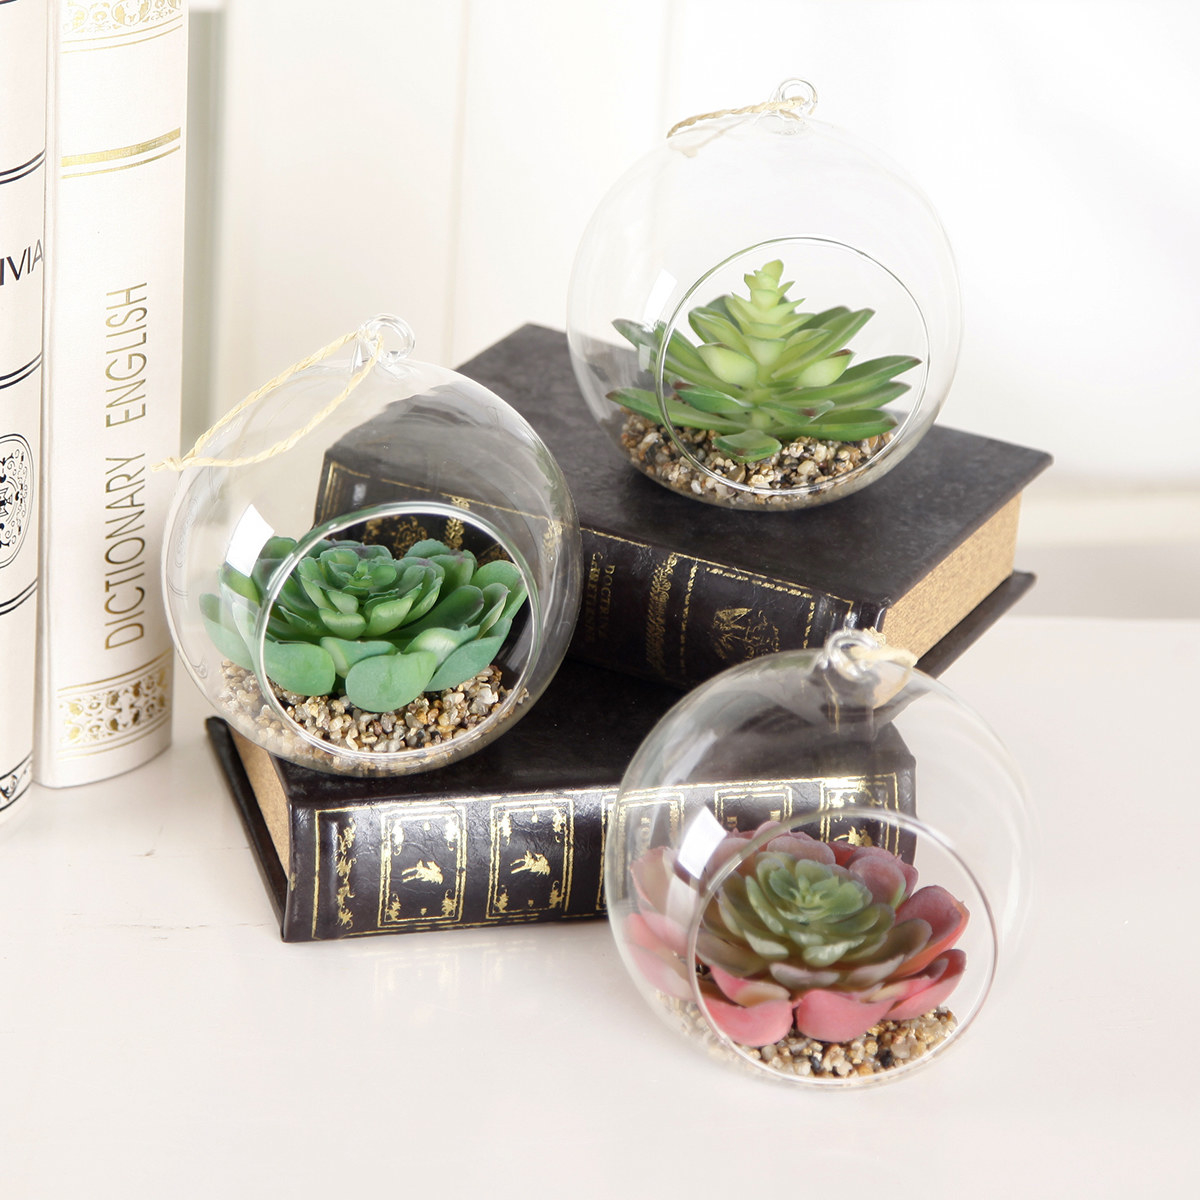 The succulents in transparent bulbs